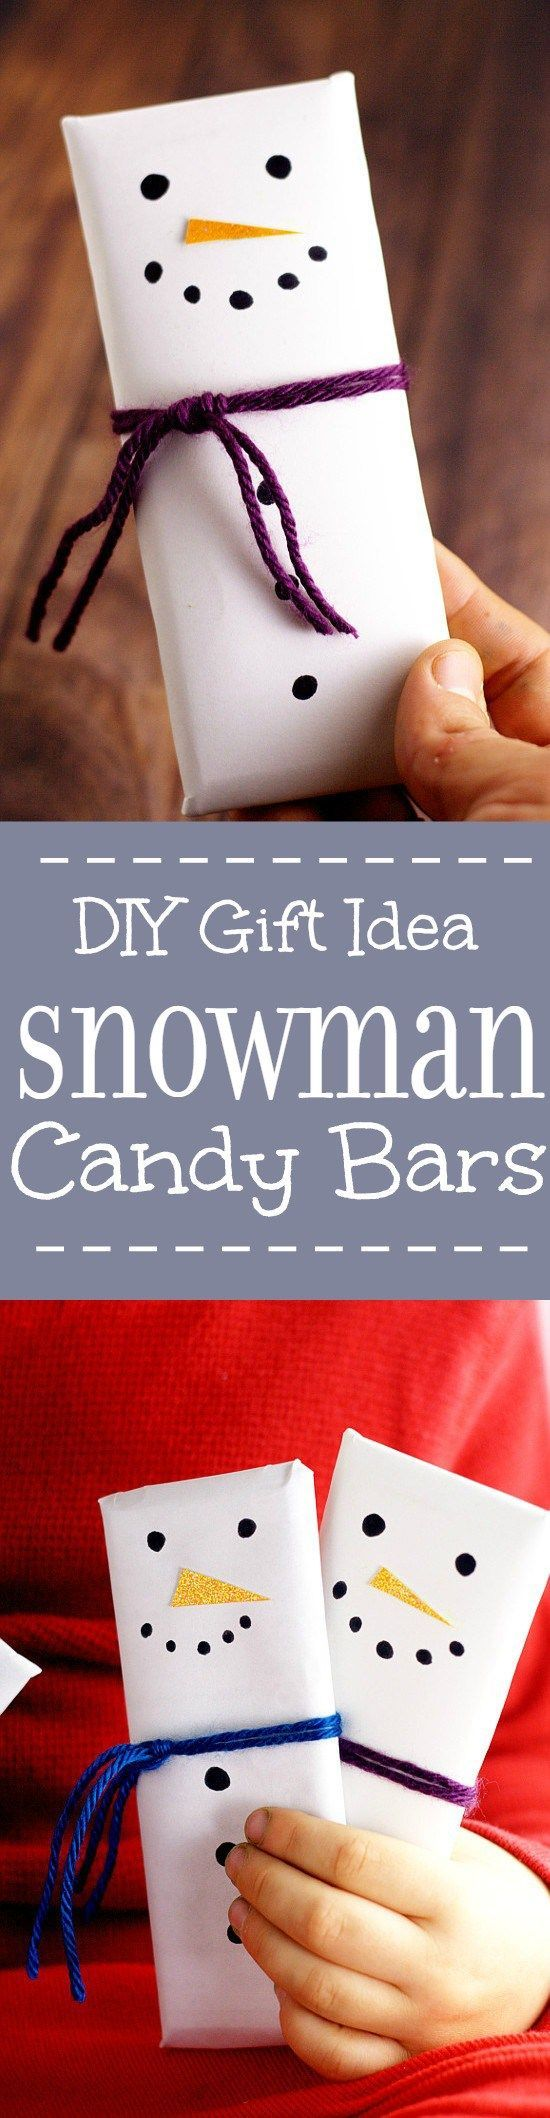 Snowman Candy Bars | DIY Gift Idea